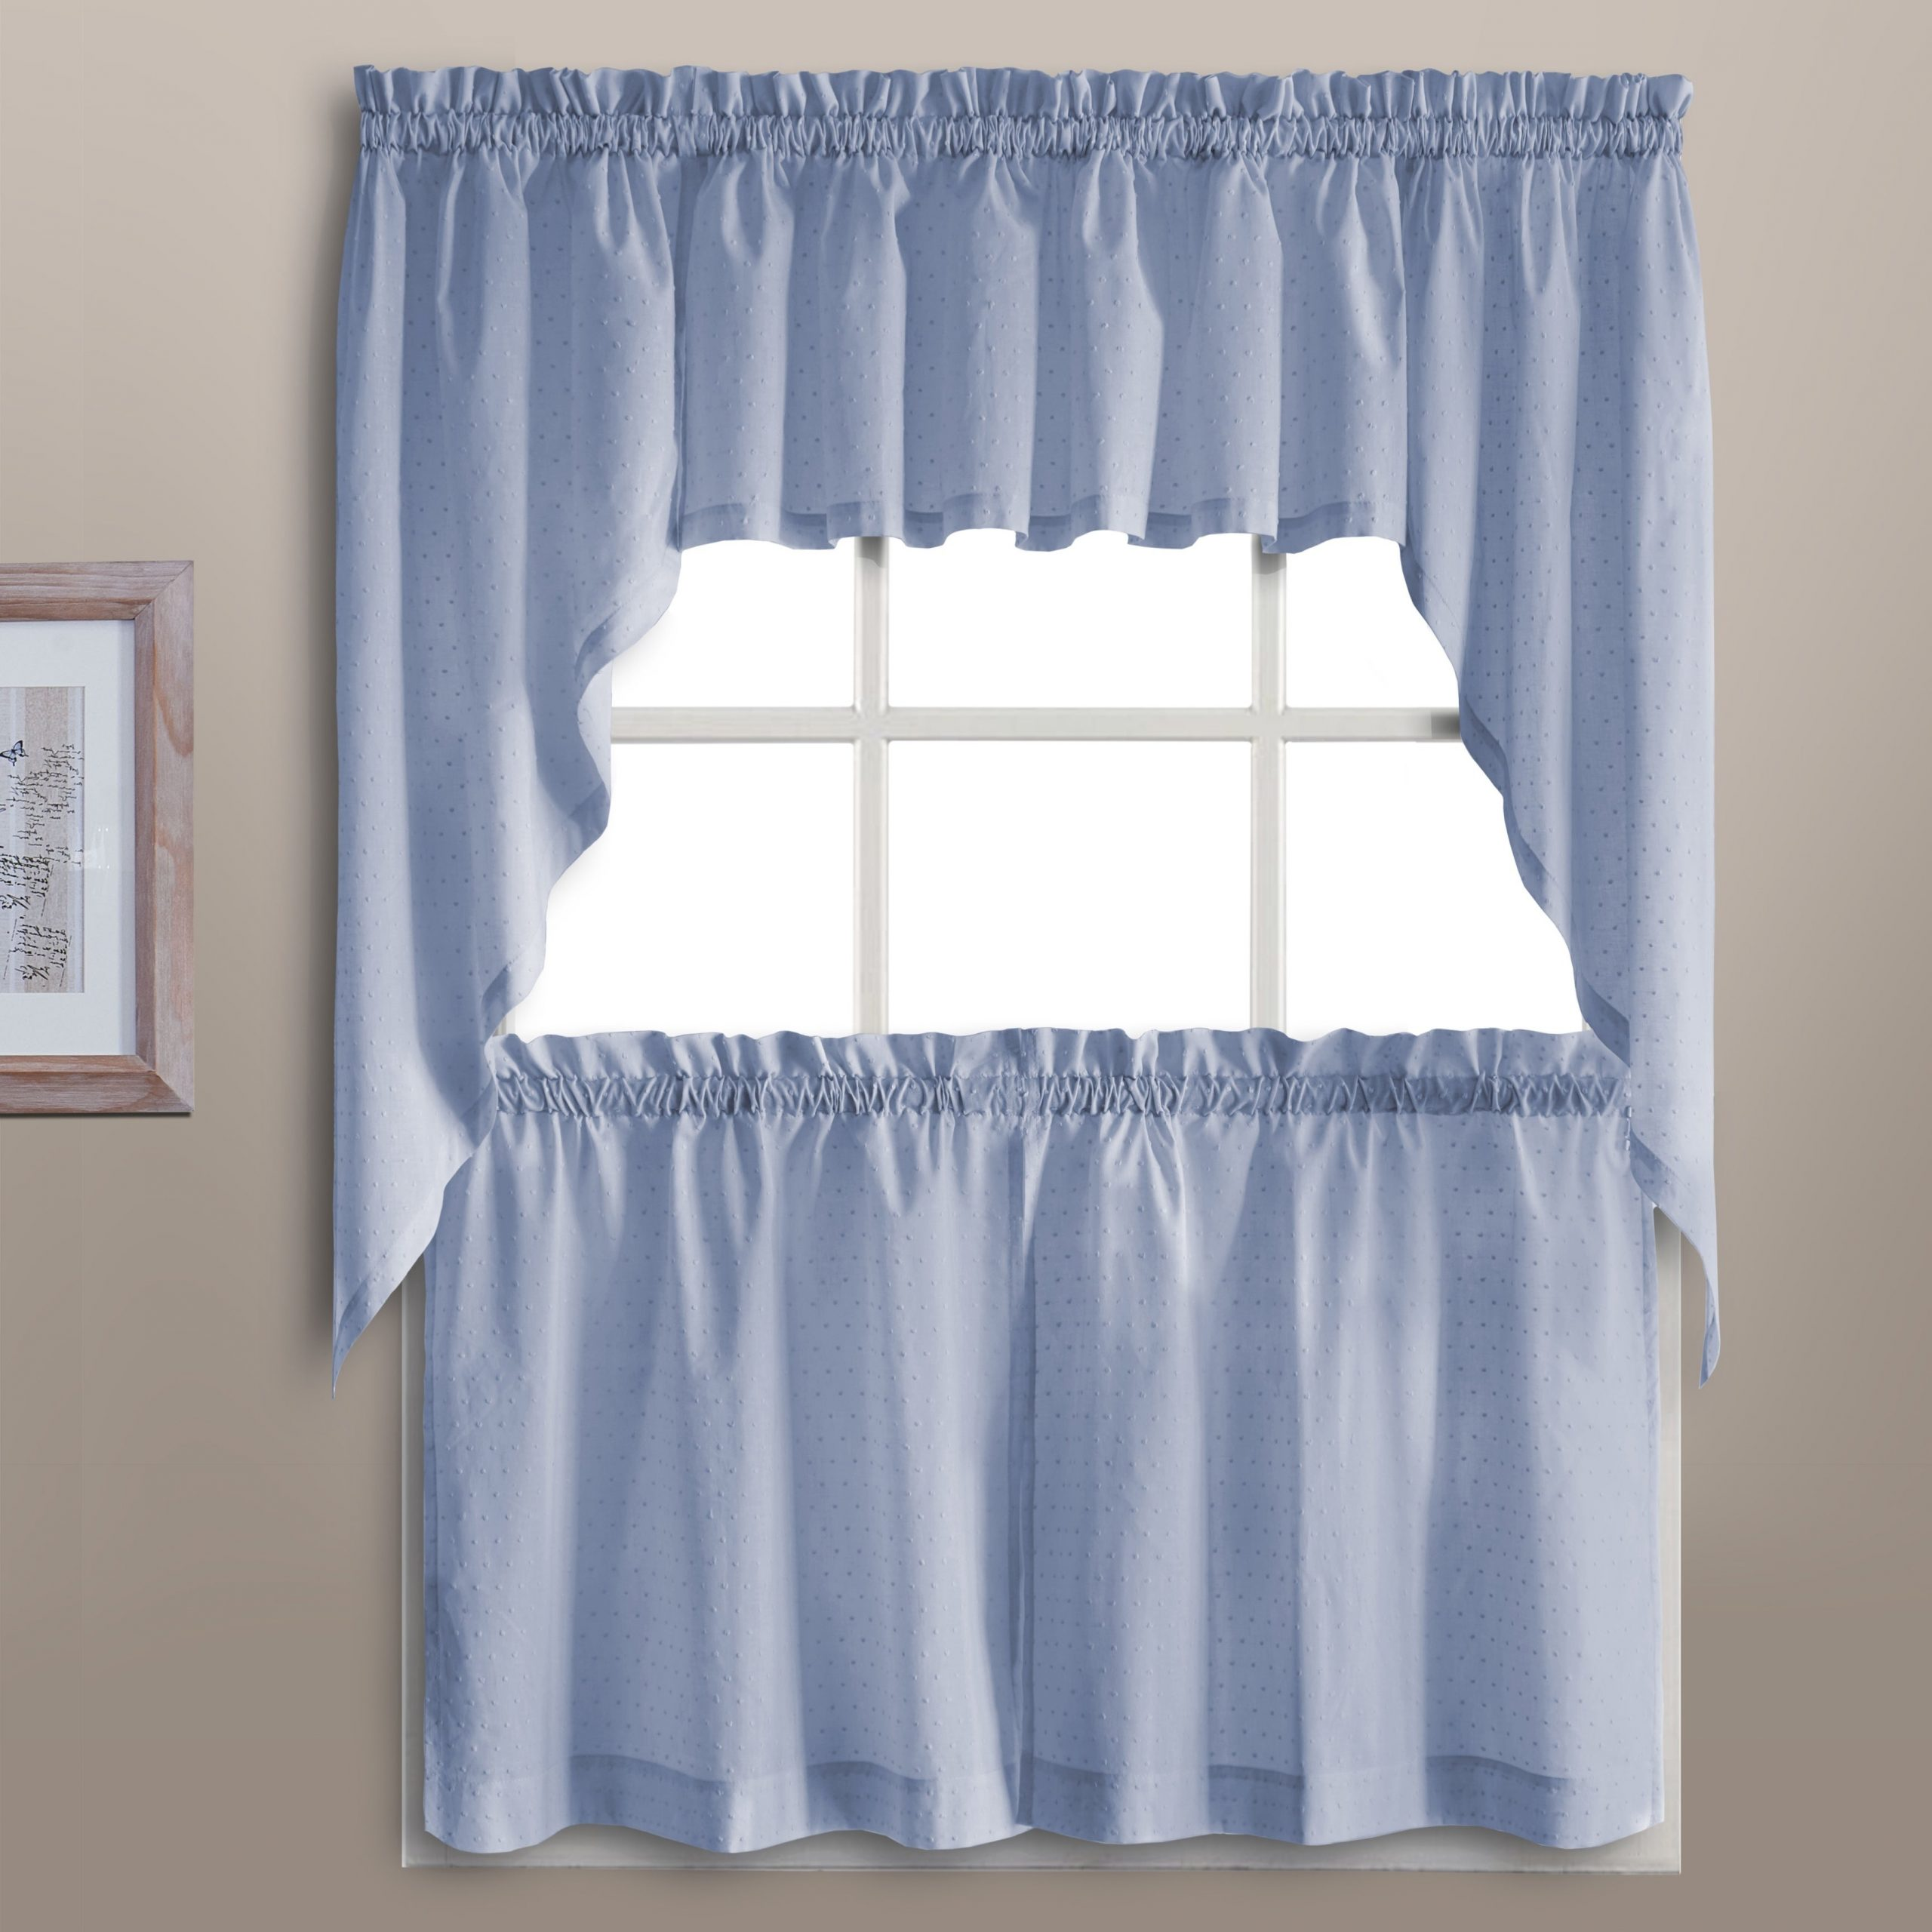 Luxury Collection Dorothy Light Filtering Kitchen Tier Intended For Luxury Light Filtering Straight Curtain Valances (View 16 of 20)